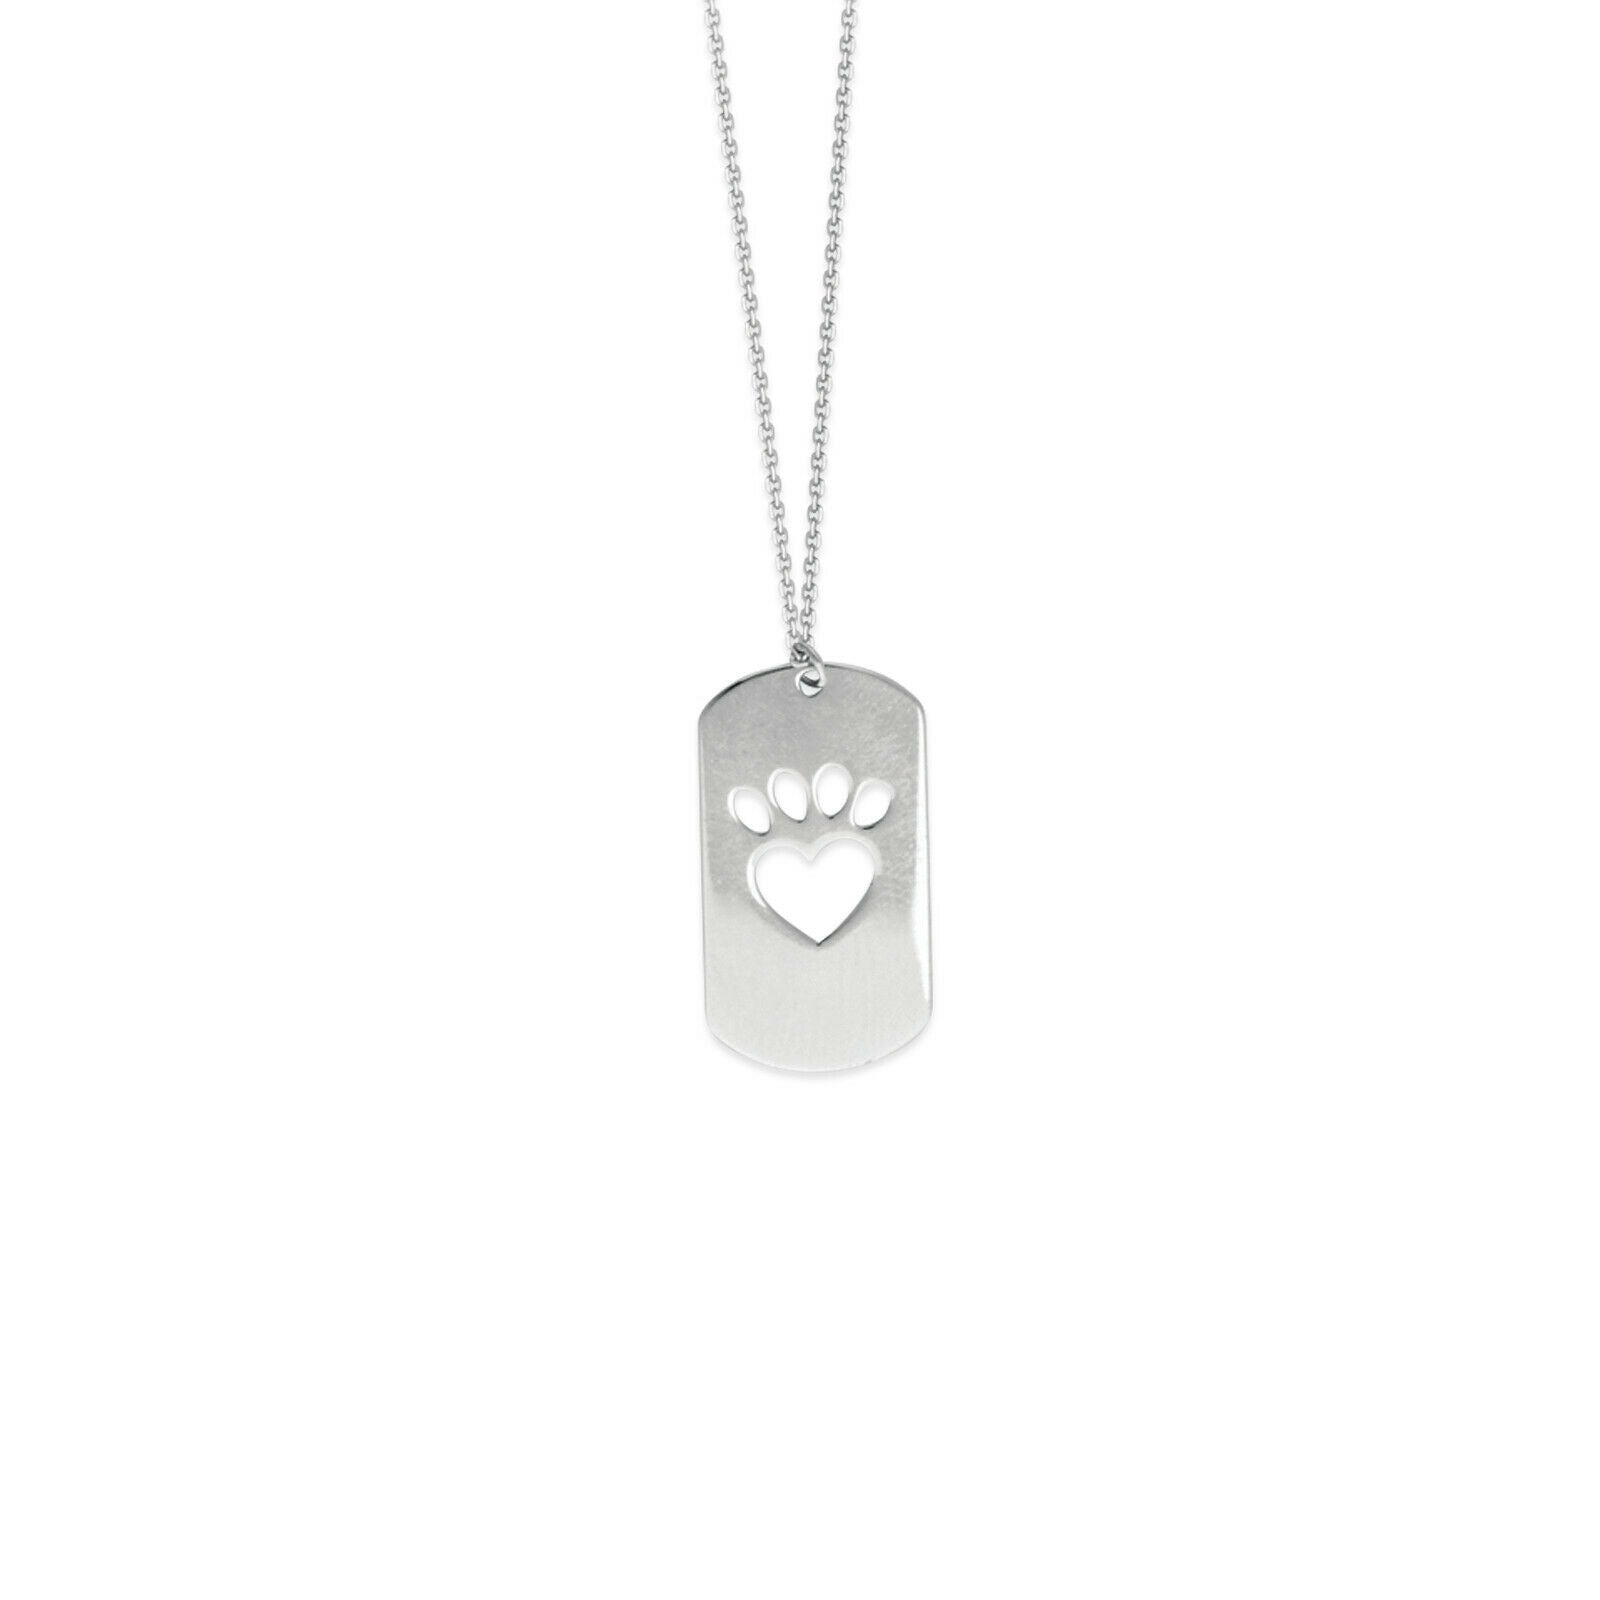 925 Sterling Silver Cut Out Heart Paw Adjustable Small Dog Tag Necklace